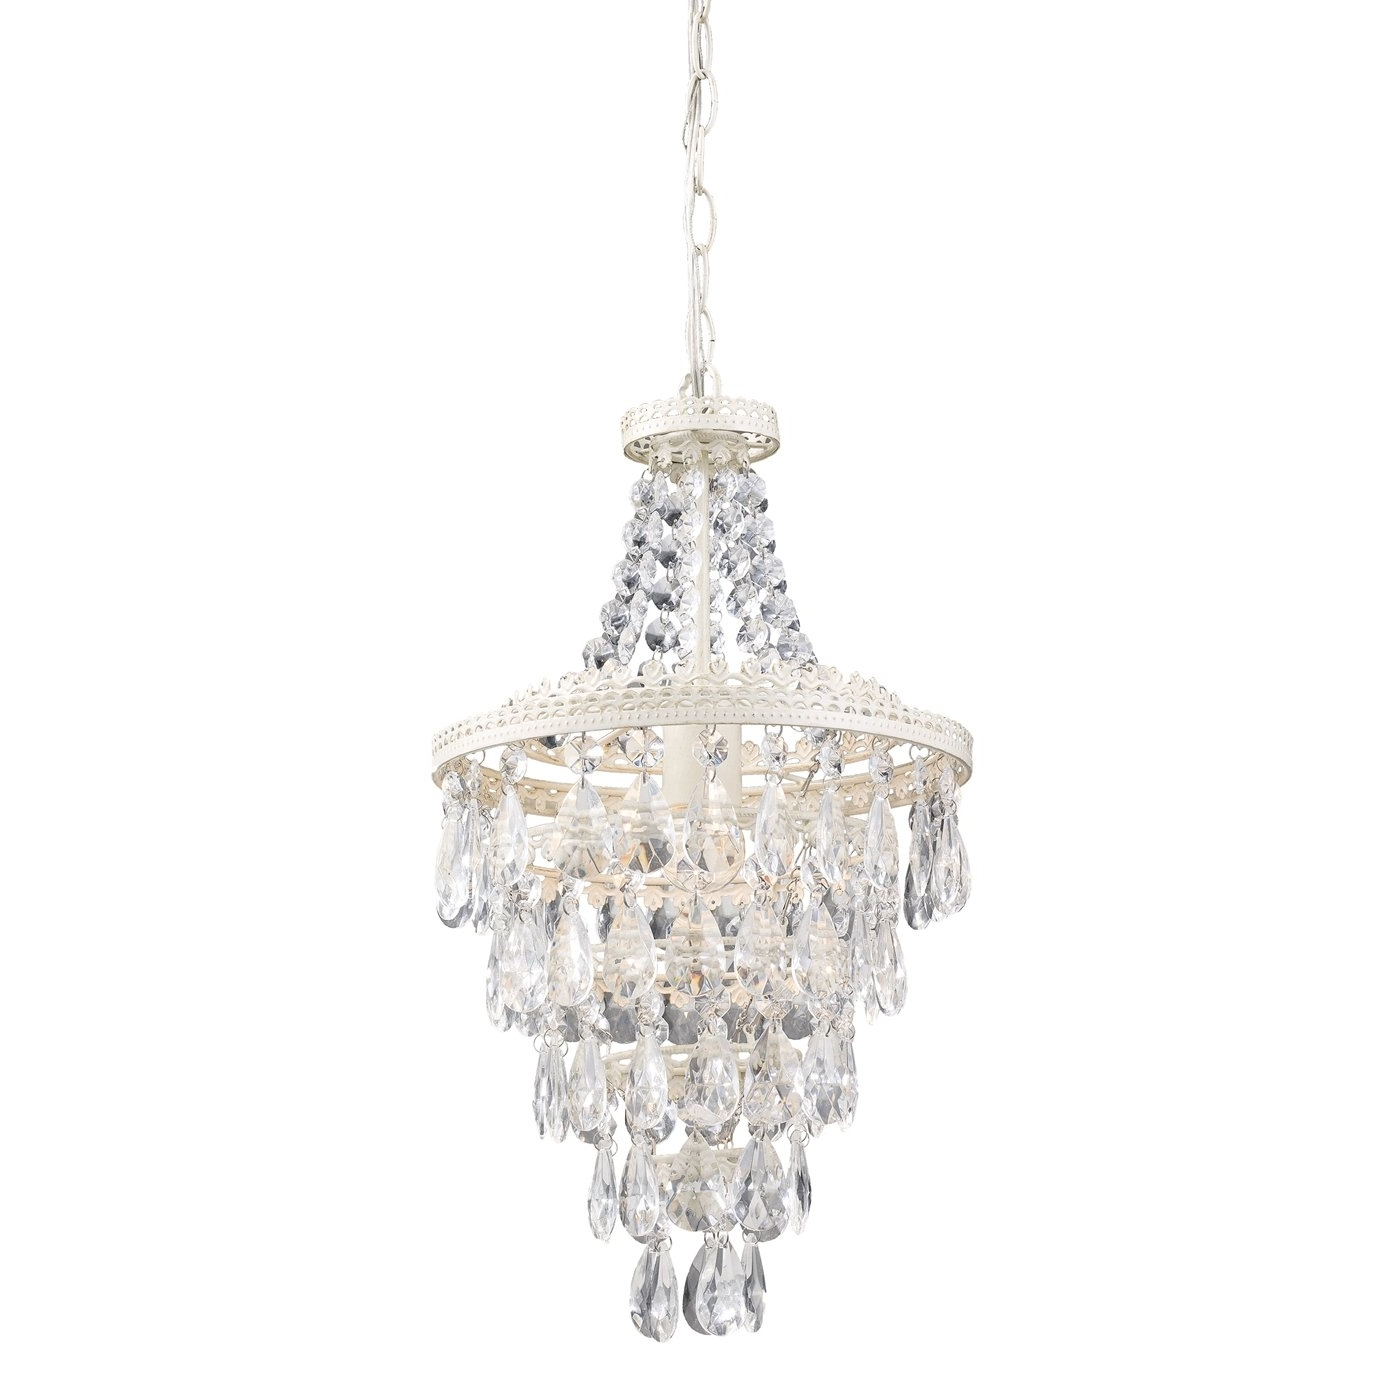 Trendy Chandeliers Design : Amazing Mini Crystal Chandelier Bathroom Regarding Mini Crystal Chandeliers (View 11 of 20)